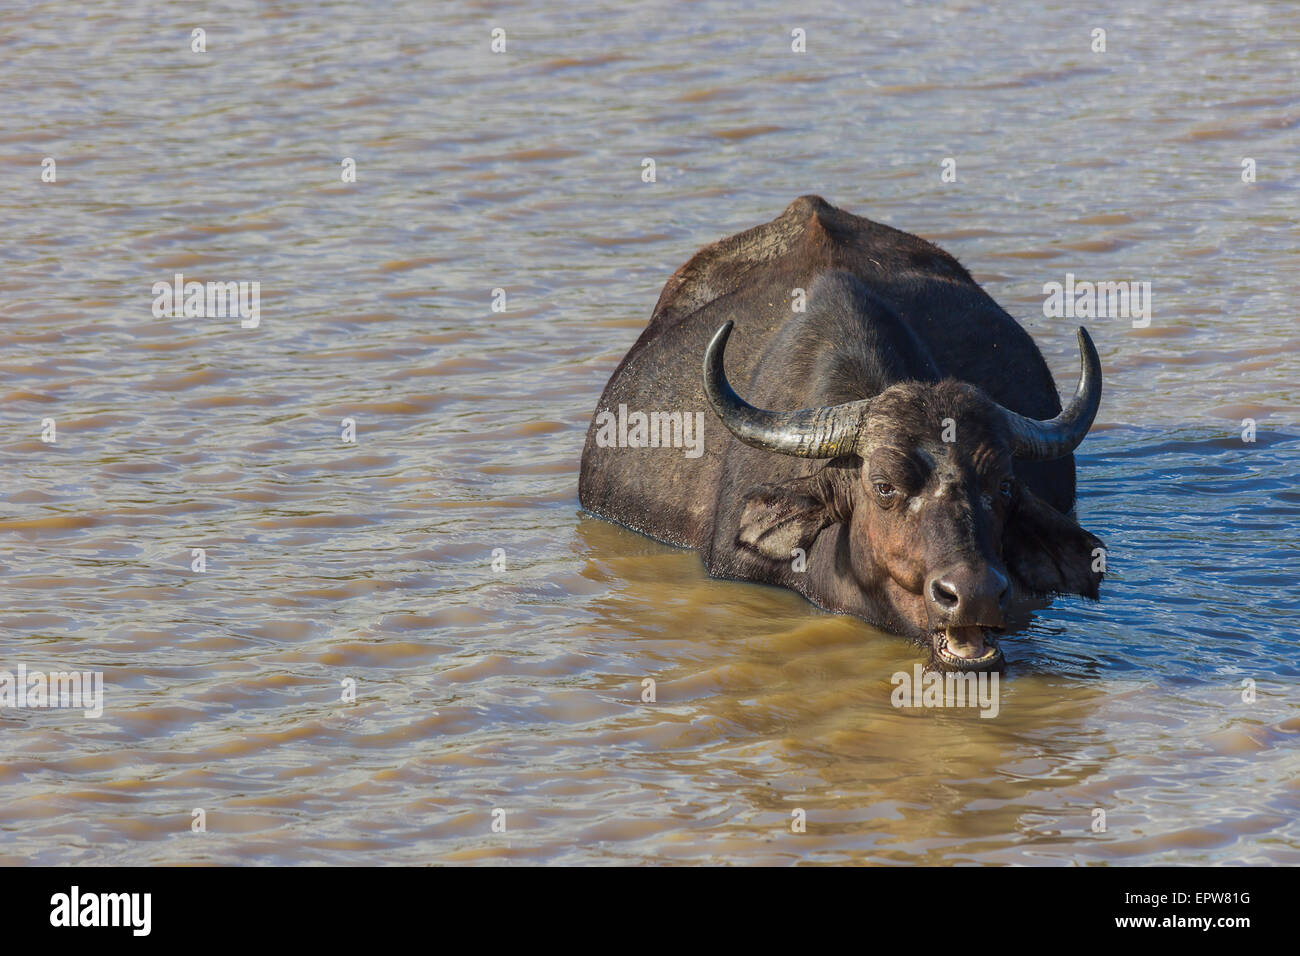 Buffalo chewing cud while submerged in a dam of water Stock Photo